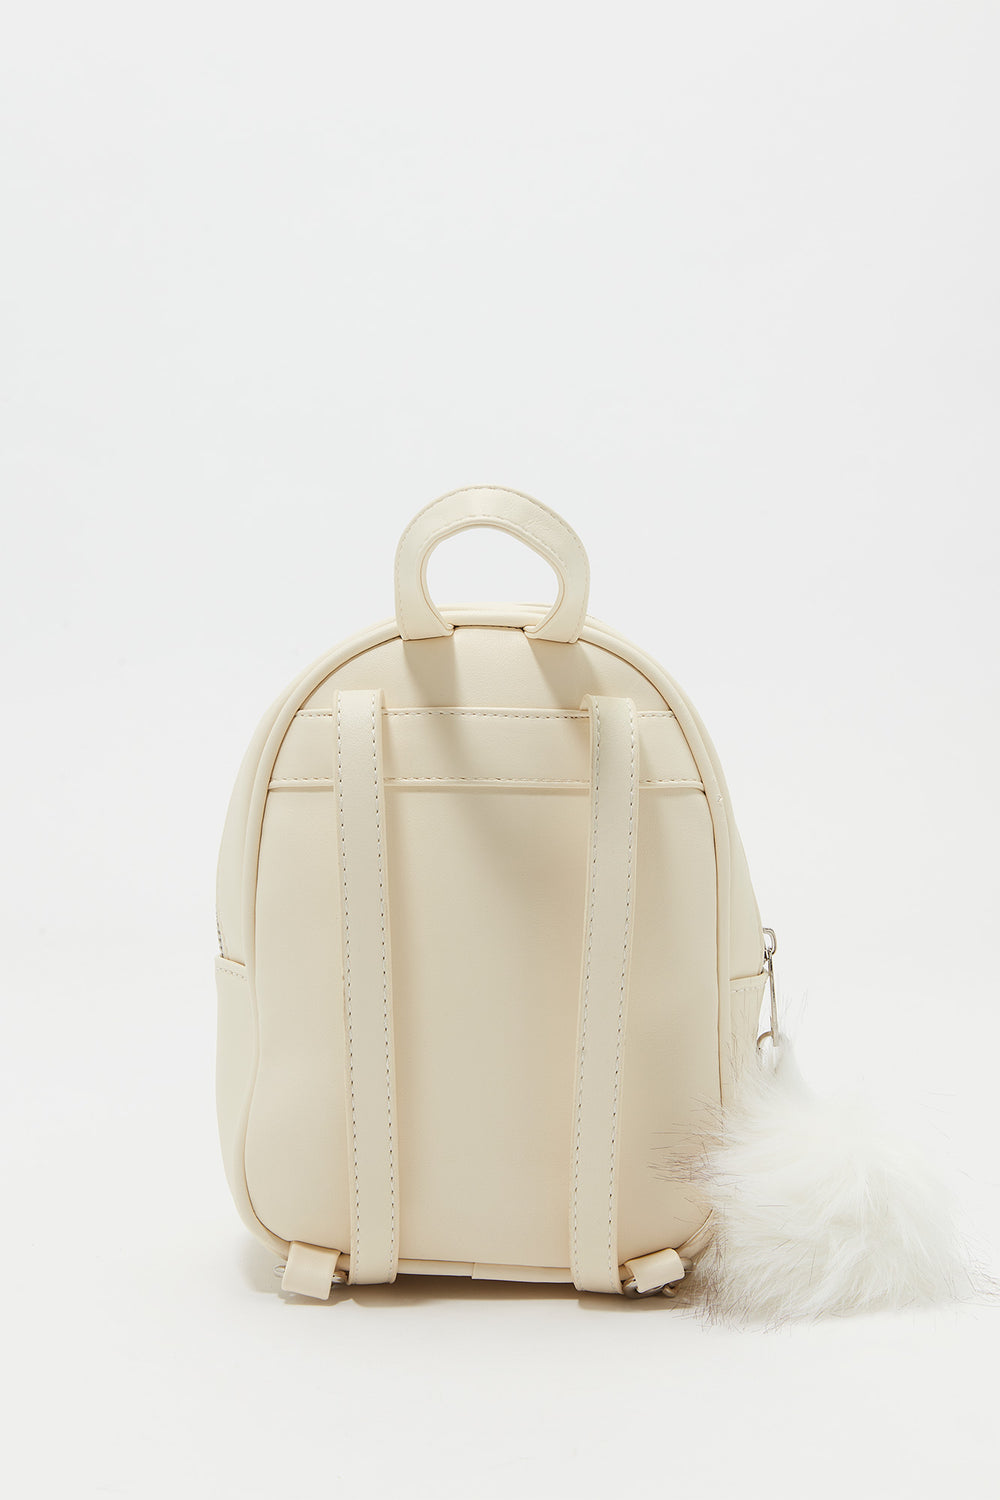 Furry Pom Pom Backpack White